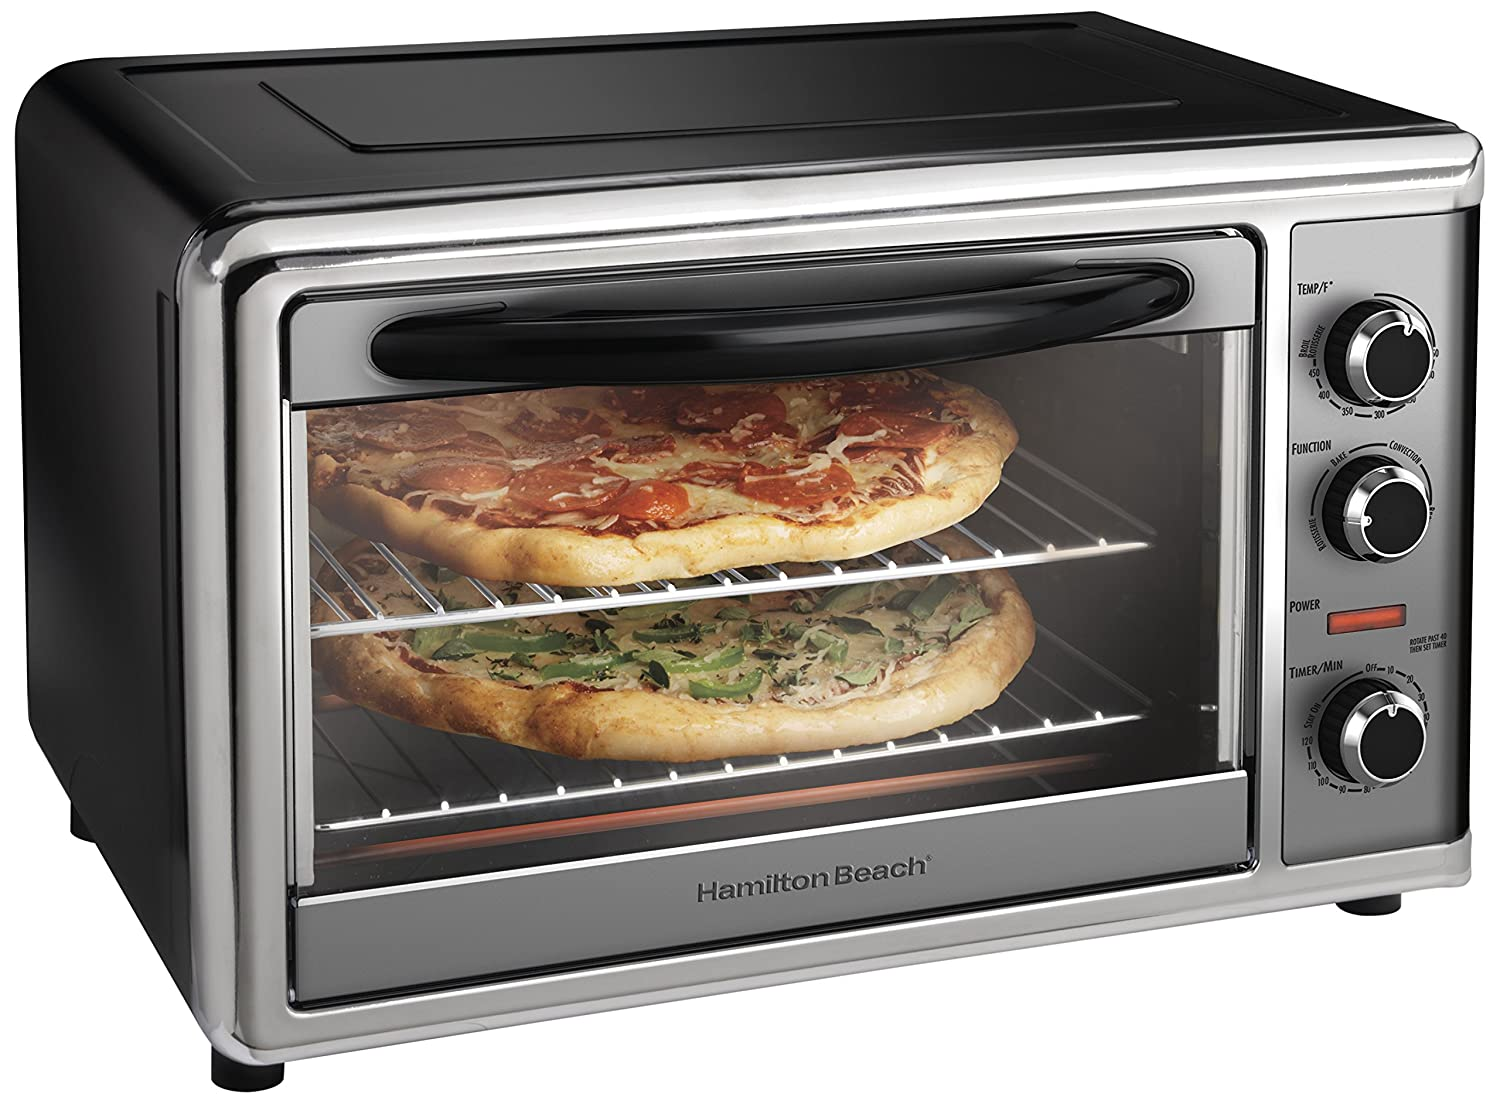 Best Rotisserie Oven Reviews 2019: Top 5+ Recommended 6 #cookymom